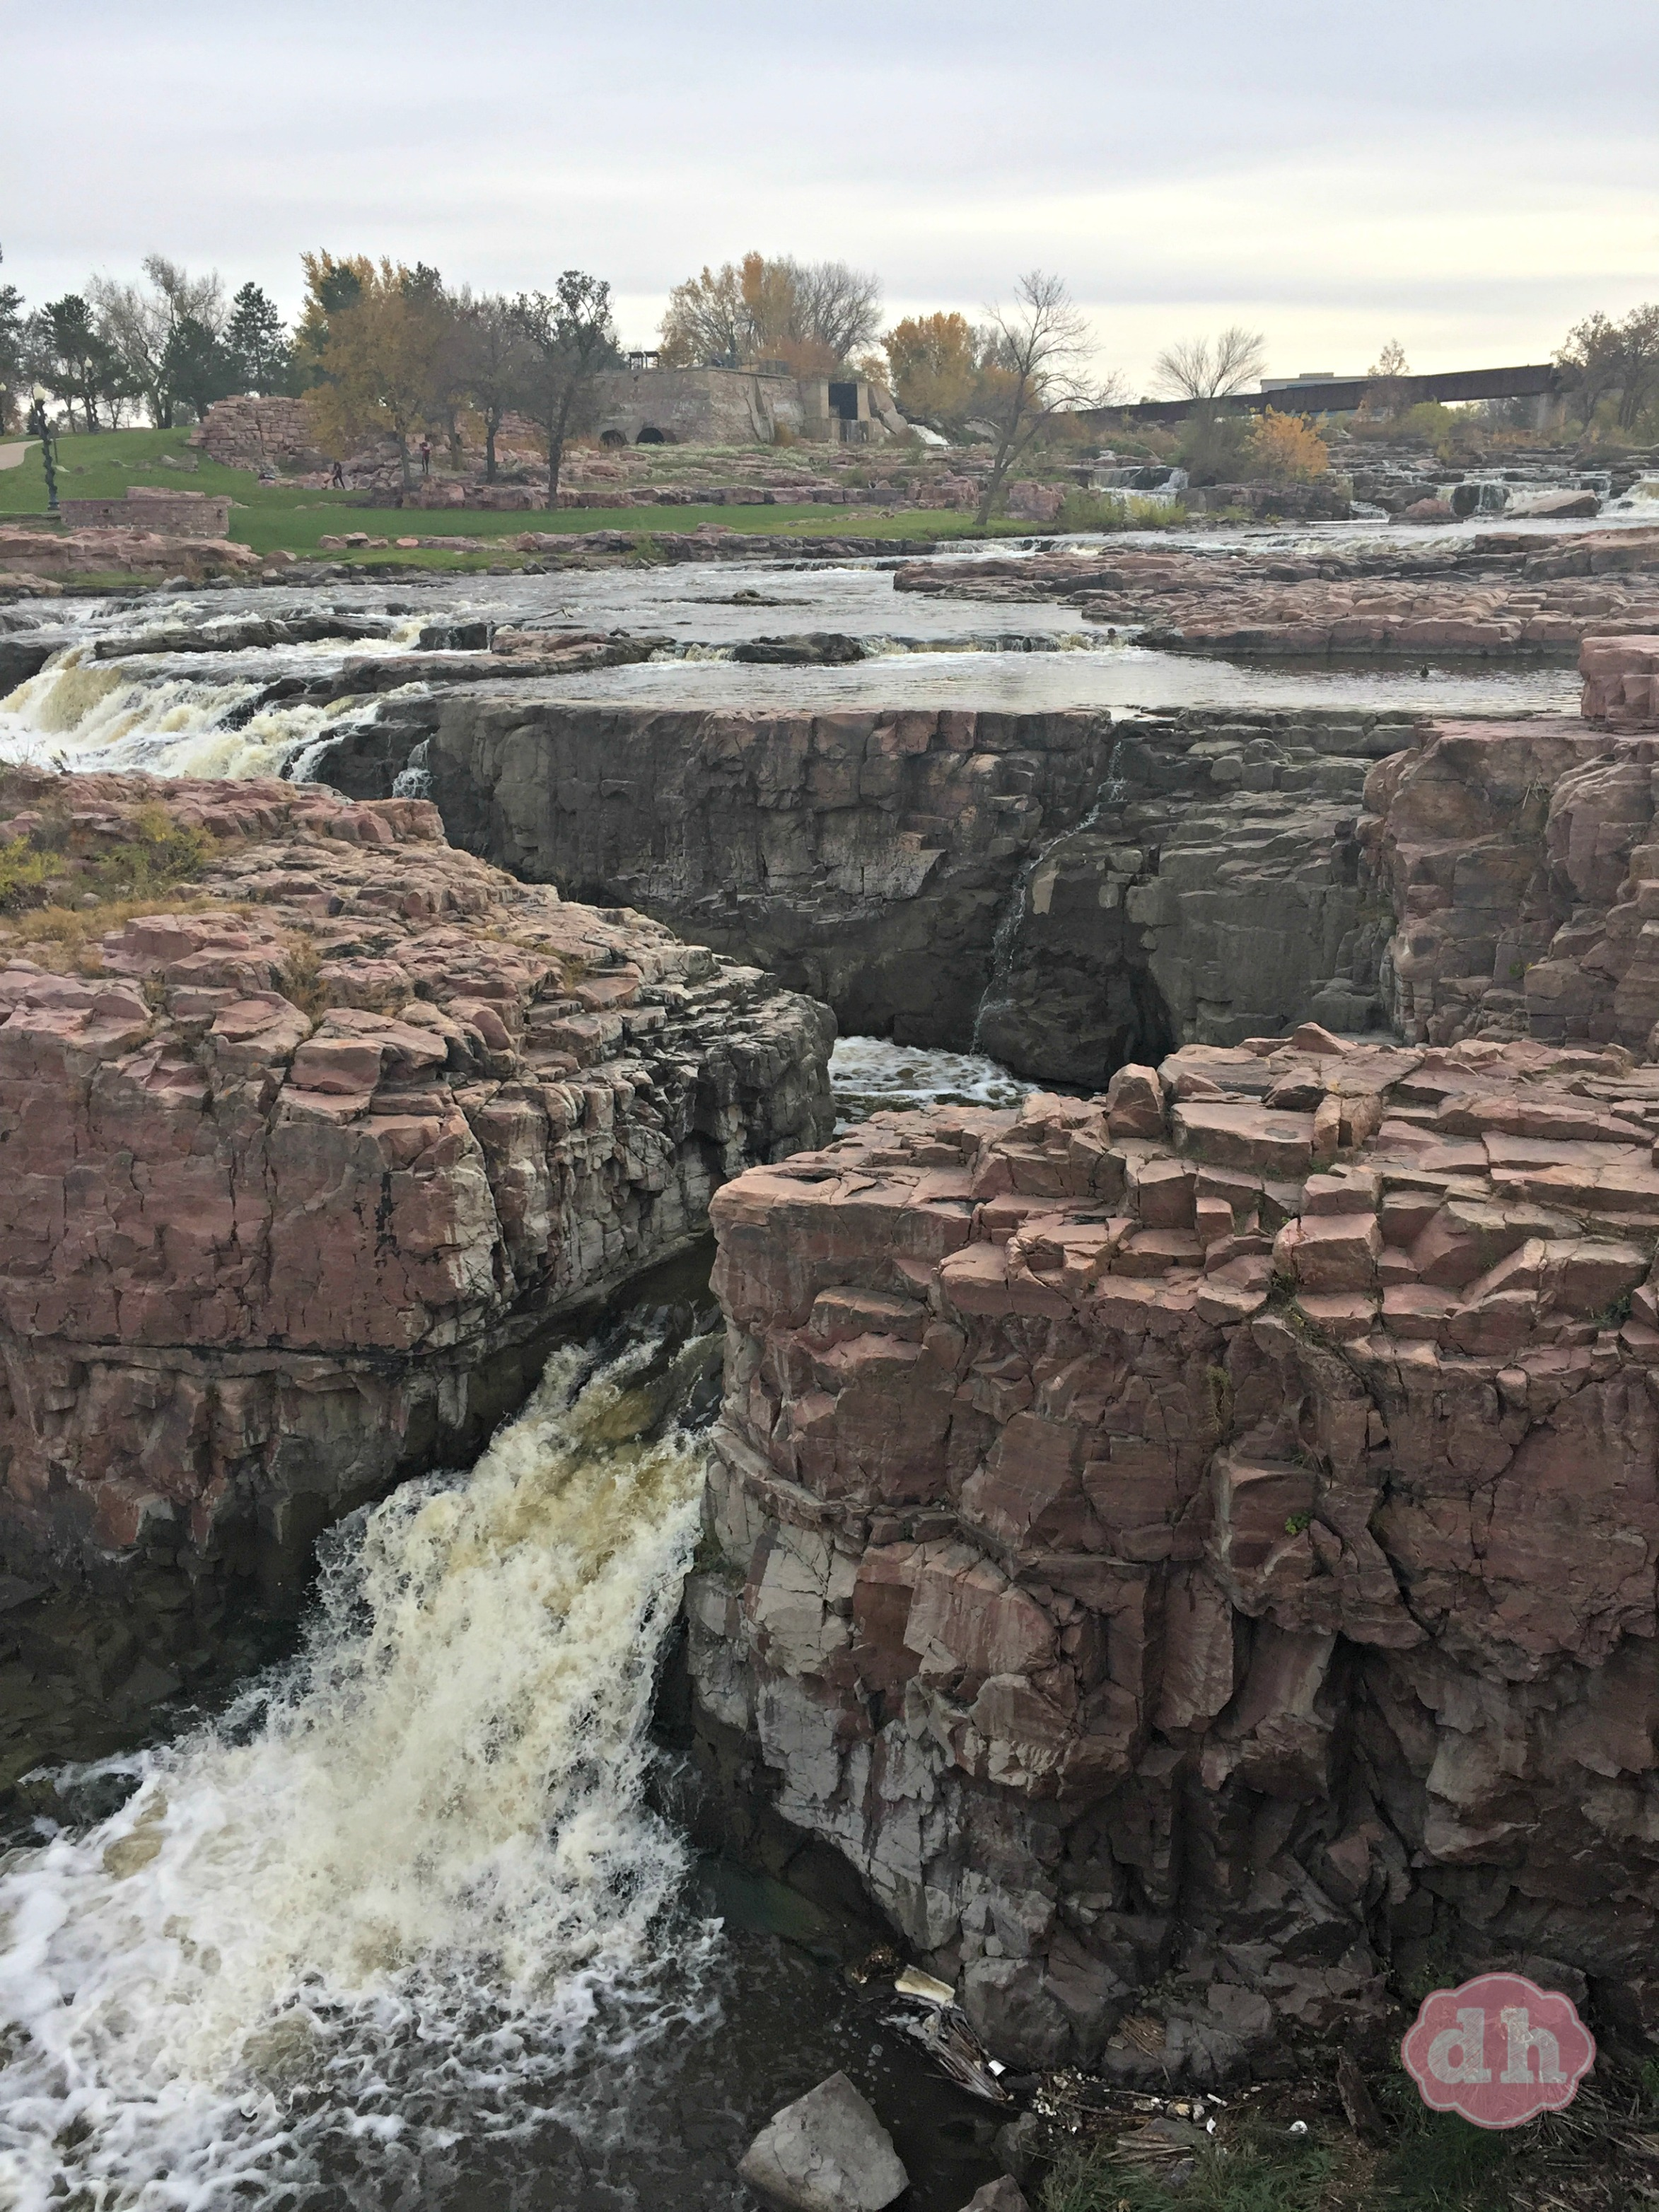 Falls Park in Sioux Falls, SD #VisitSiouxFalls #travel